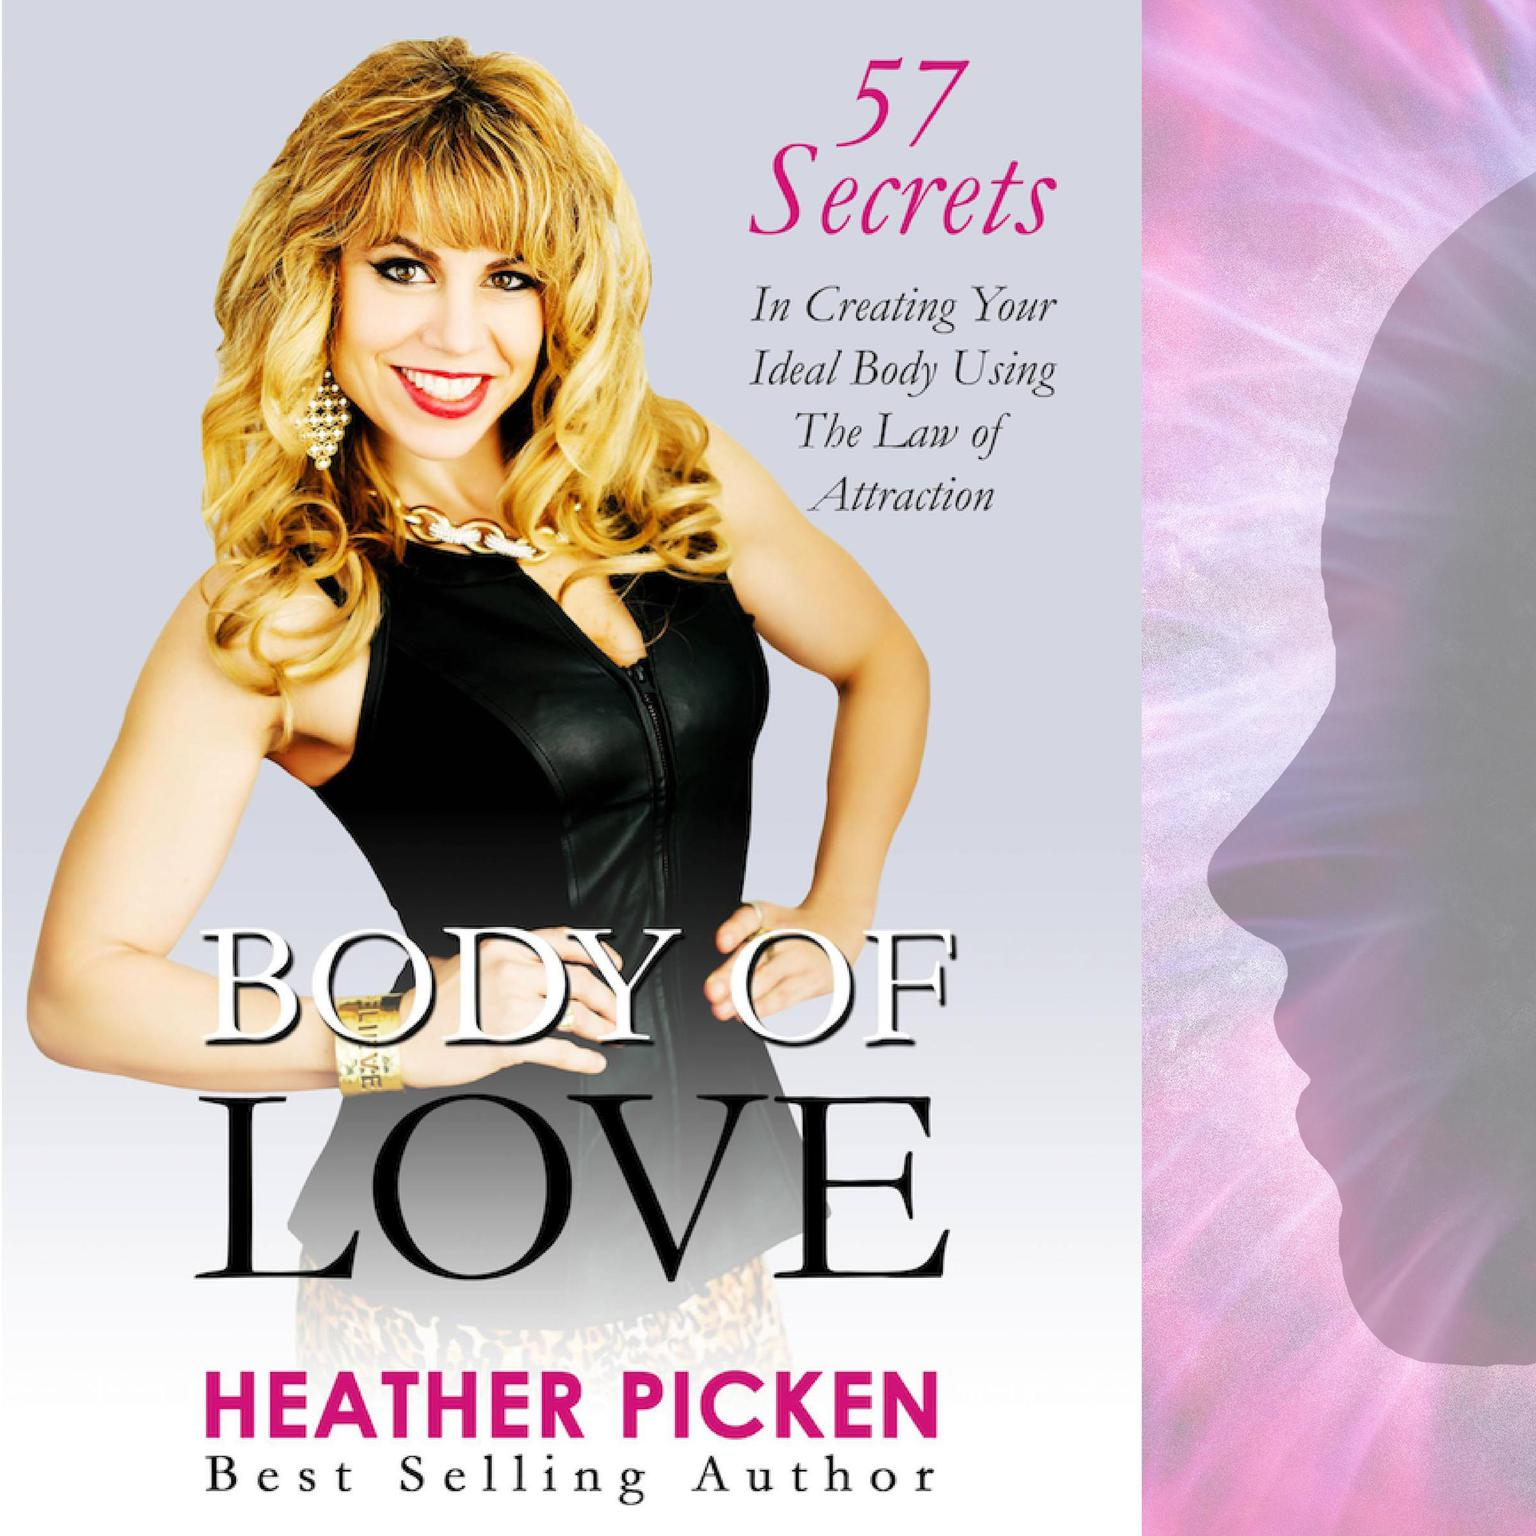 Printable Body of Love: 57 Secrets in Creating Your Ideal Body Using The Law of Attraction  Audiobook Cover Art